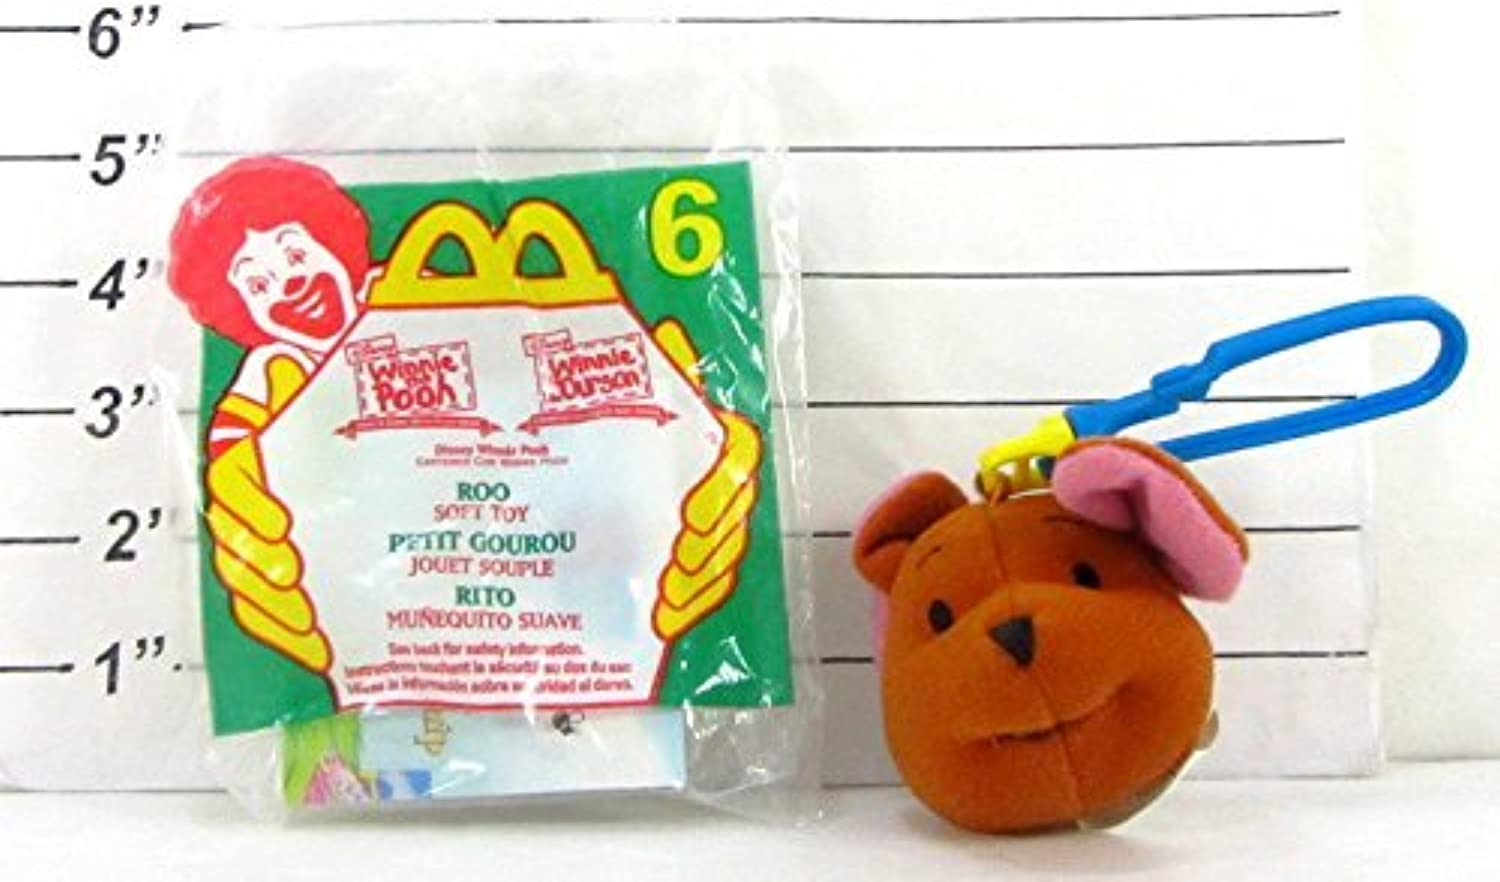 McDonald's Happy Meal  Disney Winnie the Pooh's Roo Soft Toy & Key Chain by McDonald's Happy Meal Toys